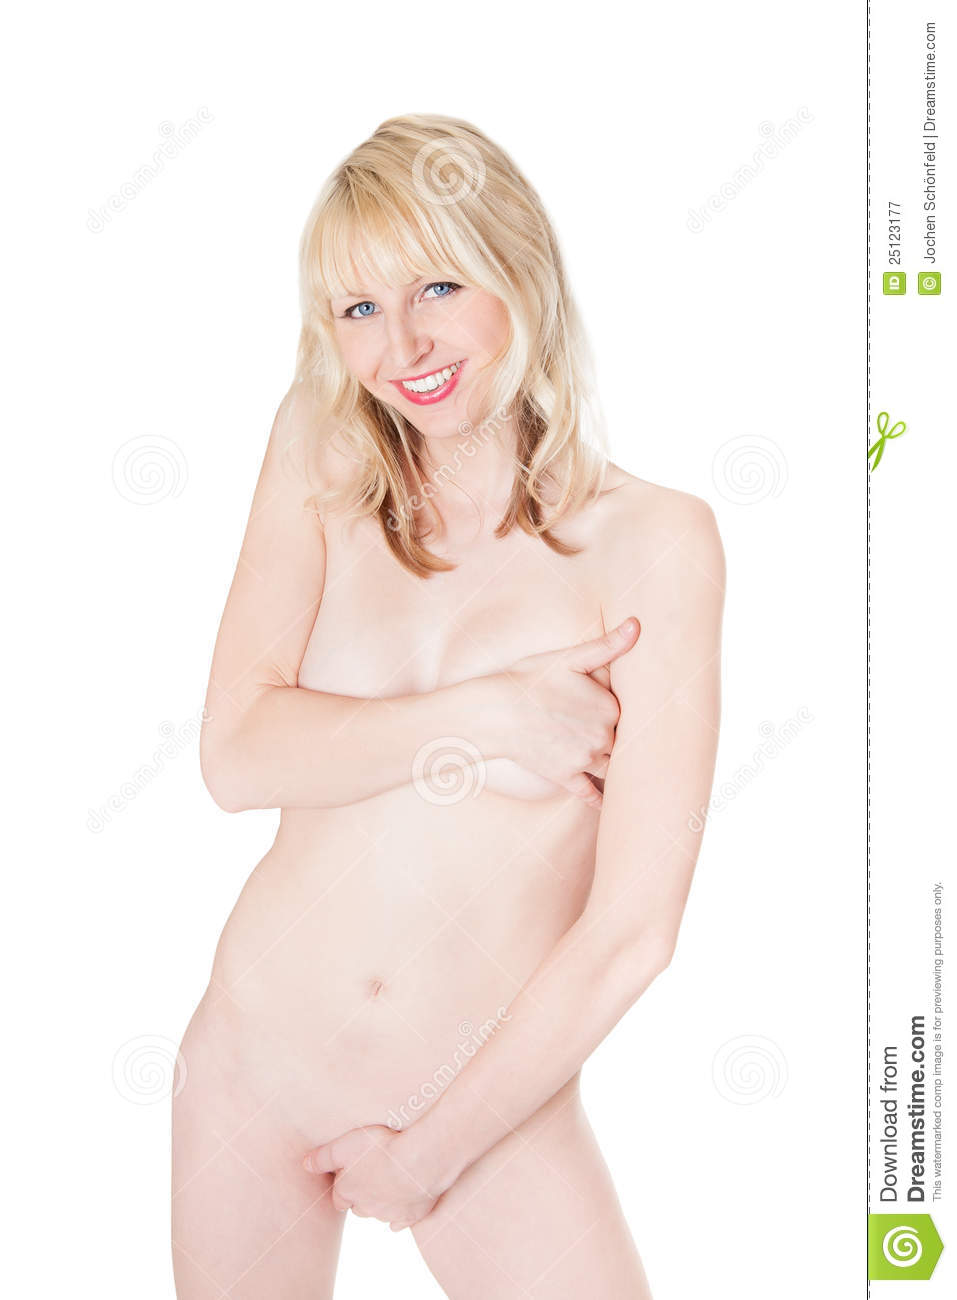 nude woman covering herself